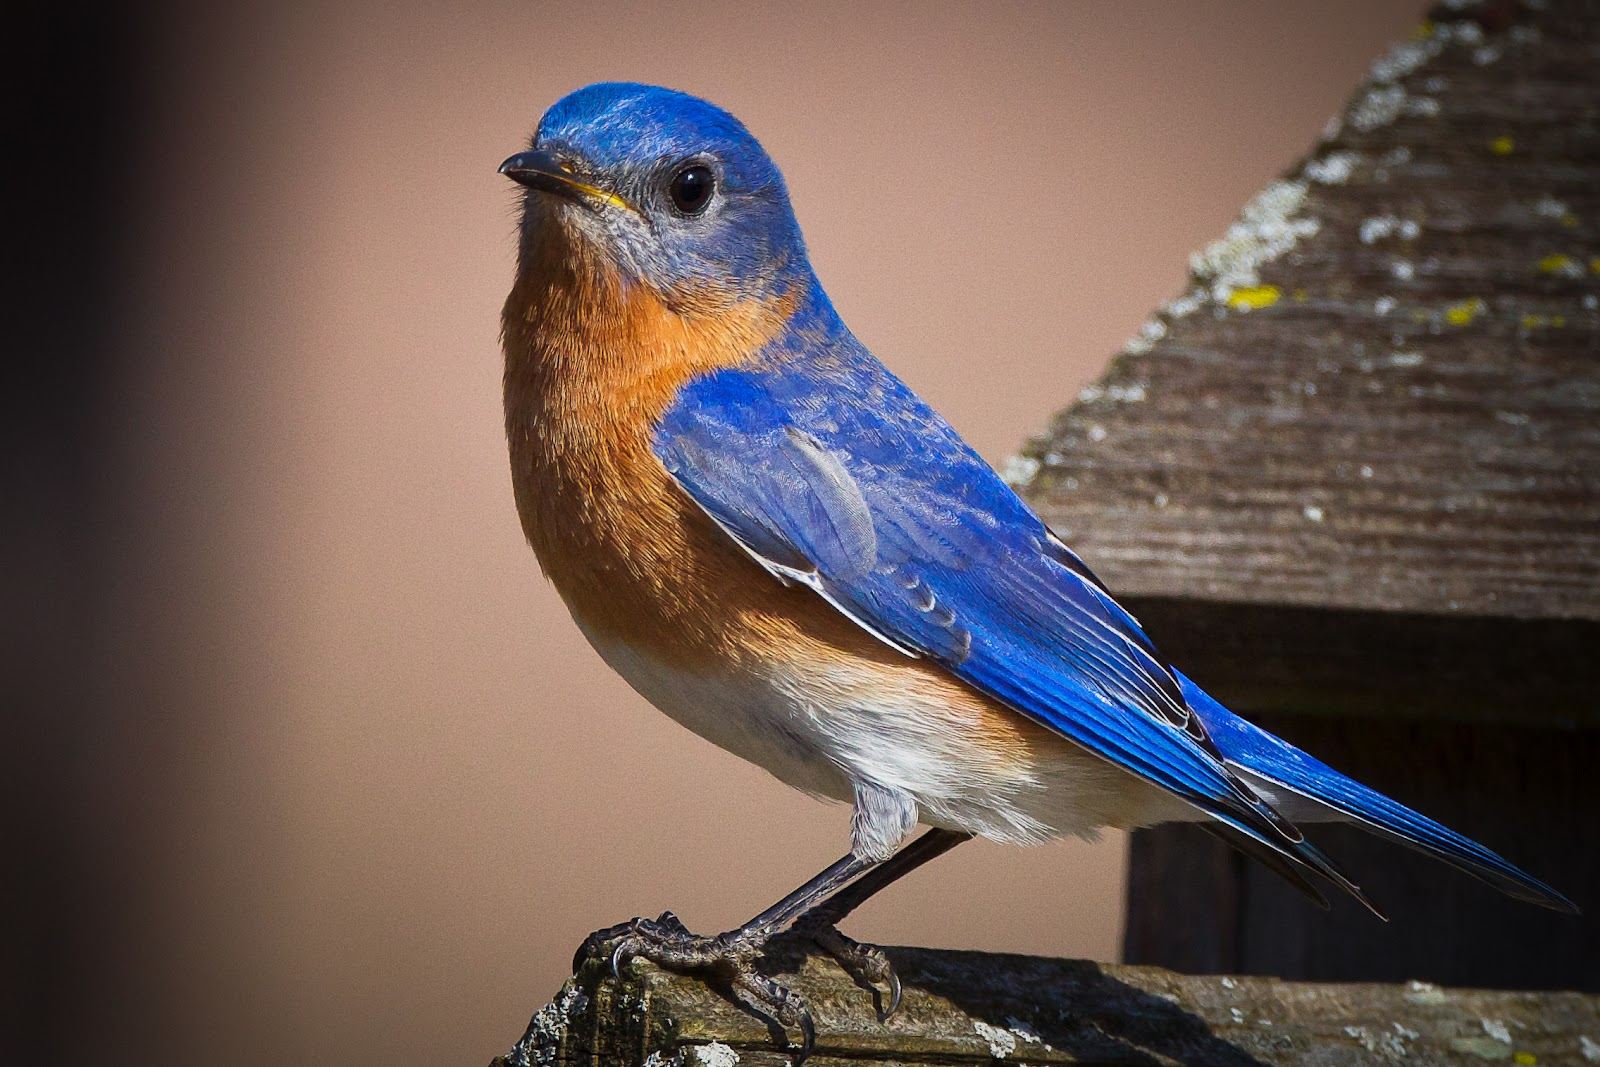 Blue bird - photo#4